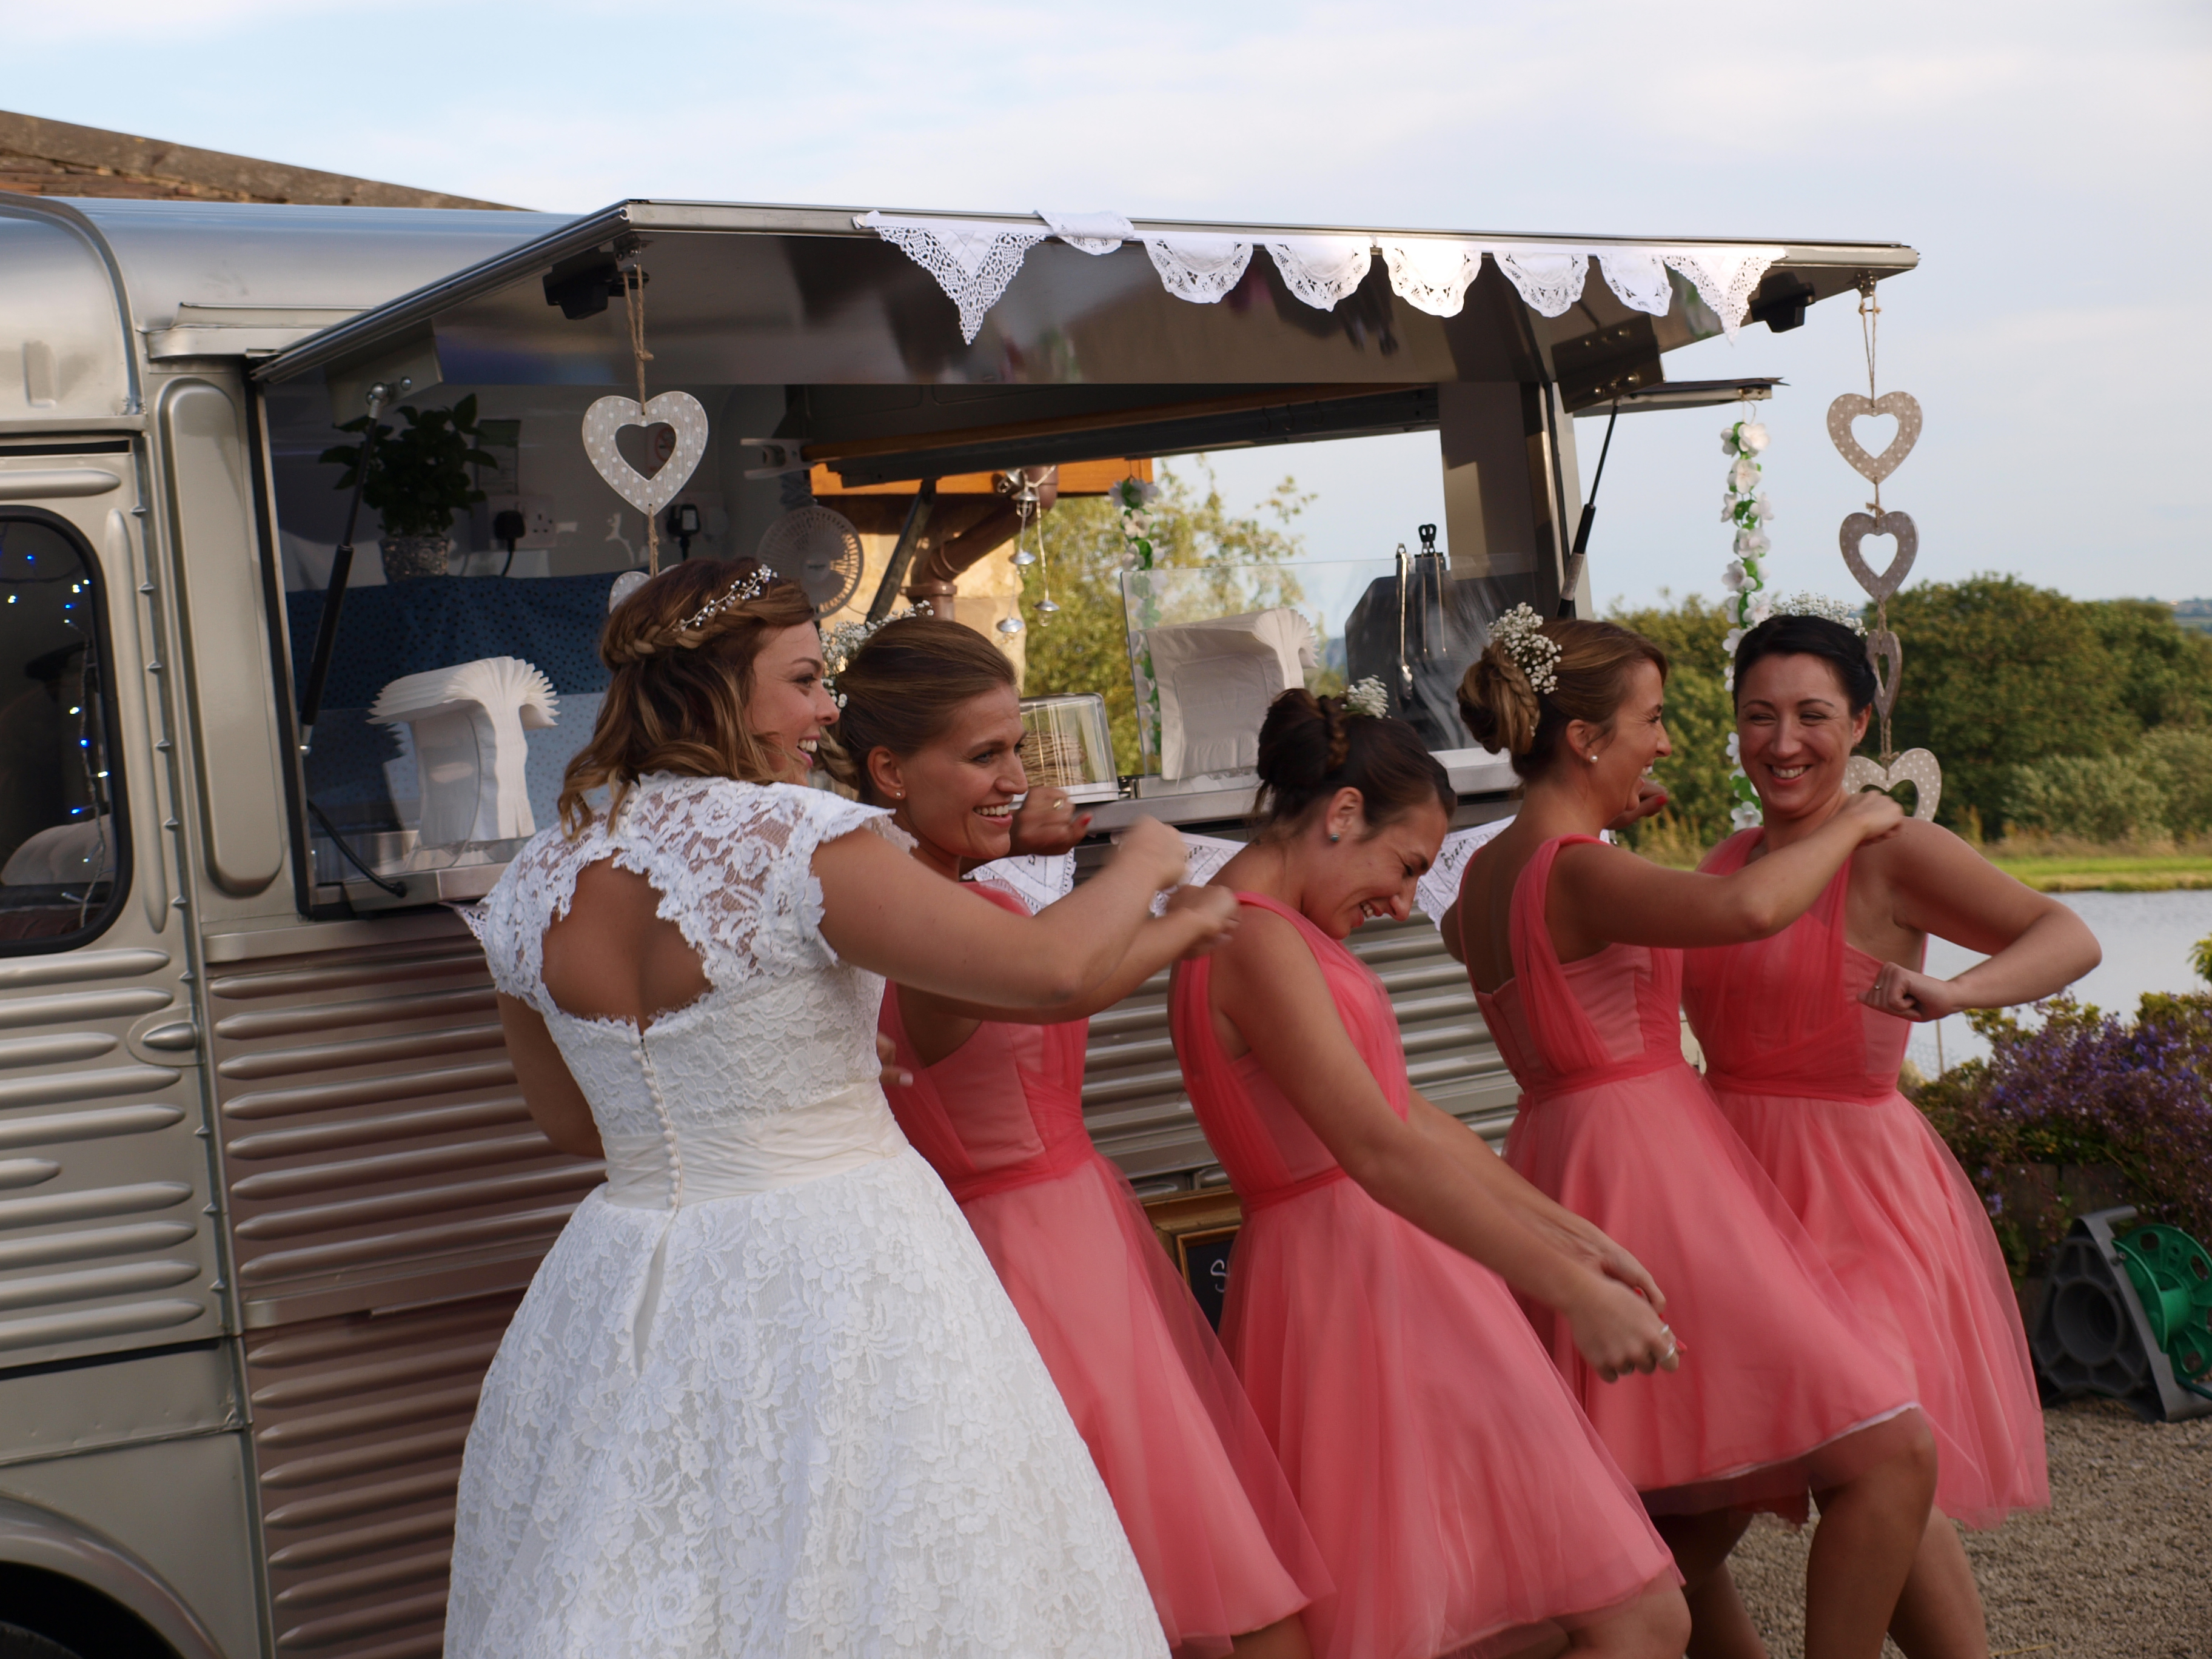 Bride & bridesmaids having fun at White Chimnies Cottages in Staffordshire moorland